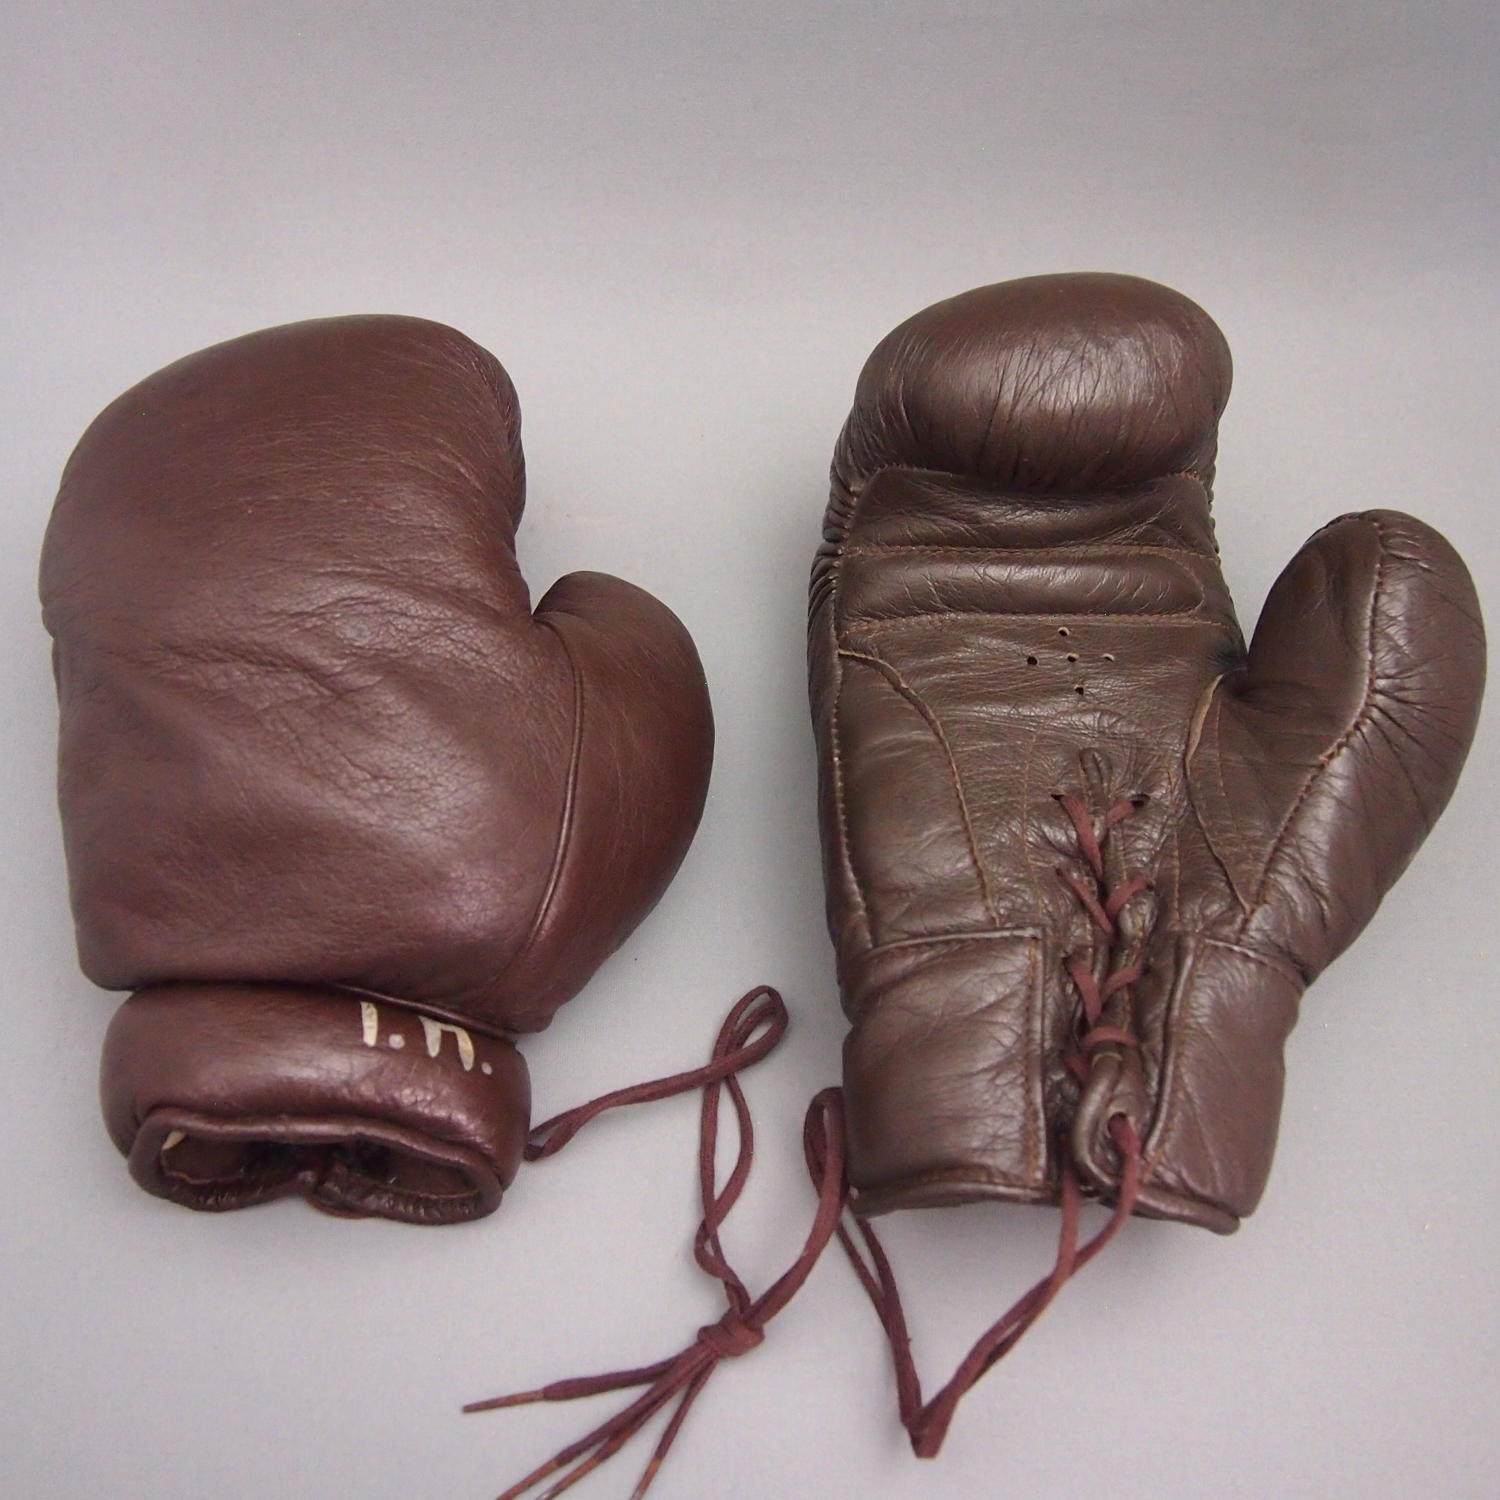 Vintage Leather Boxing Gloves Original C1960s